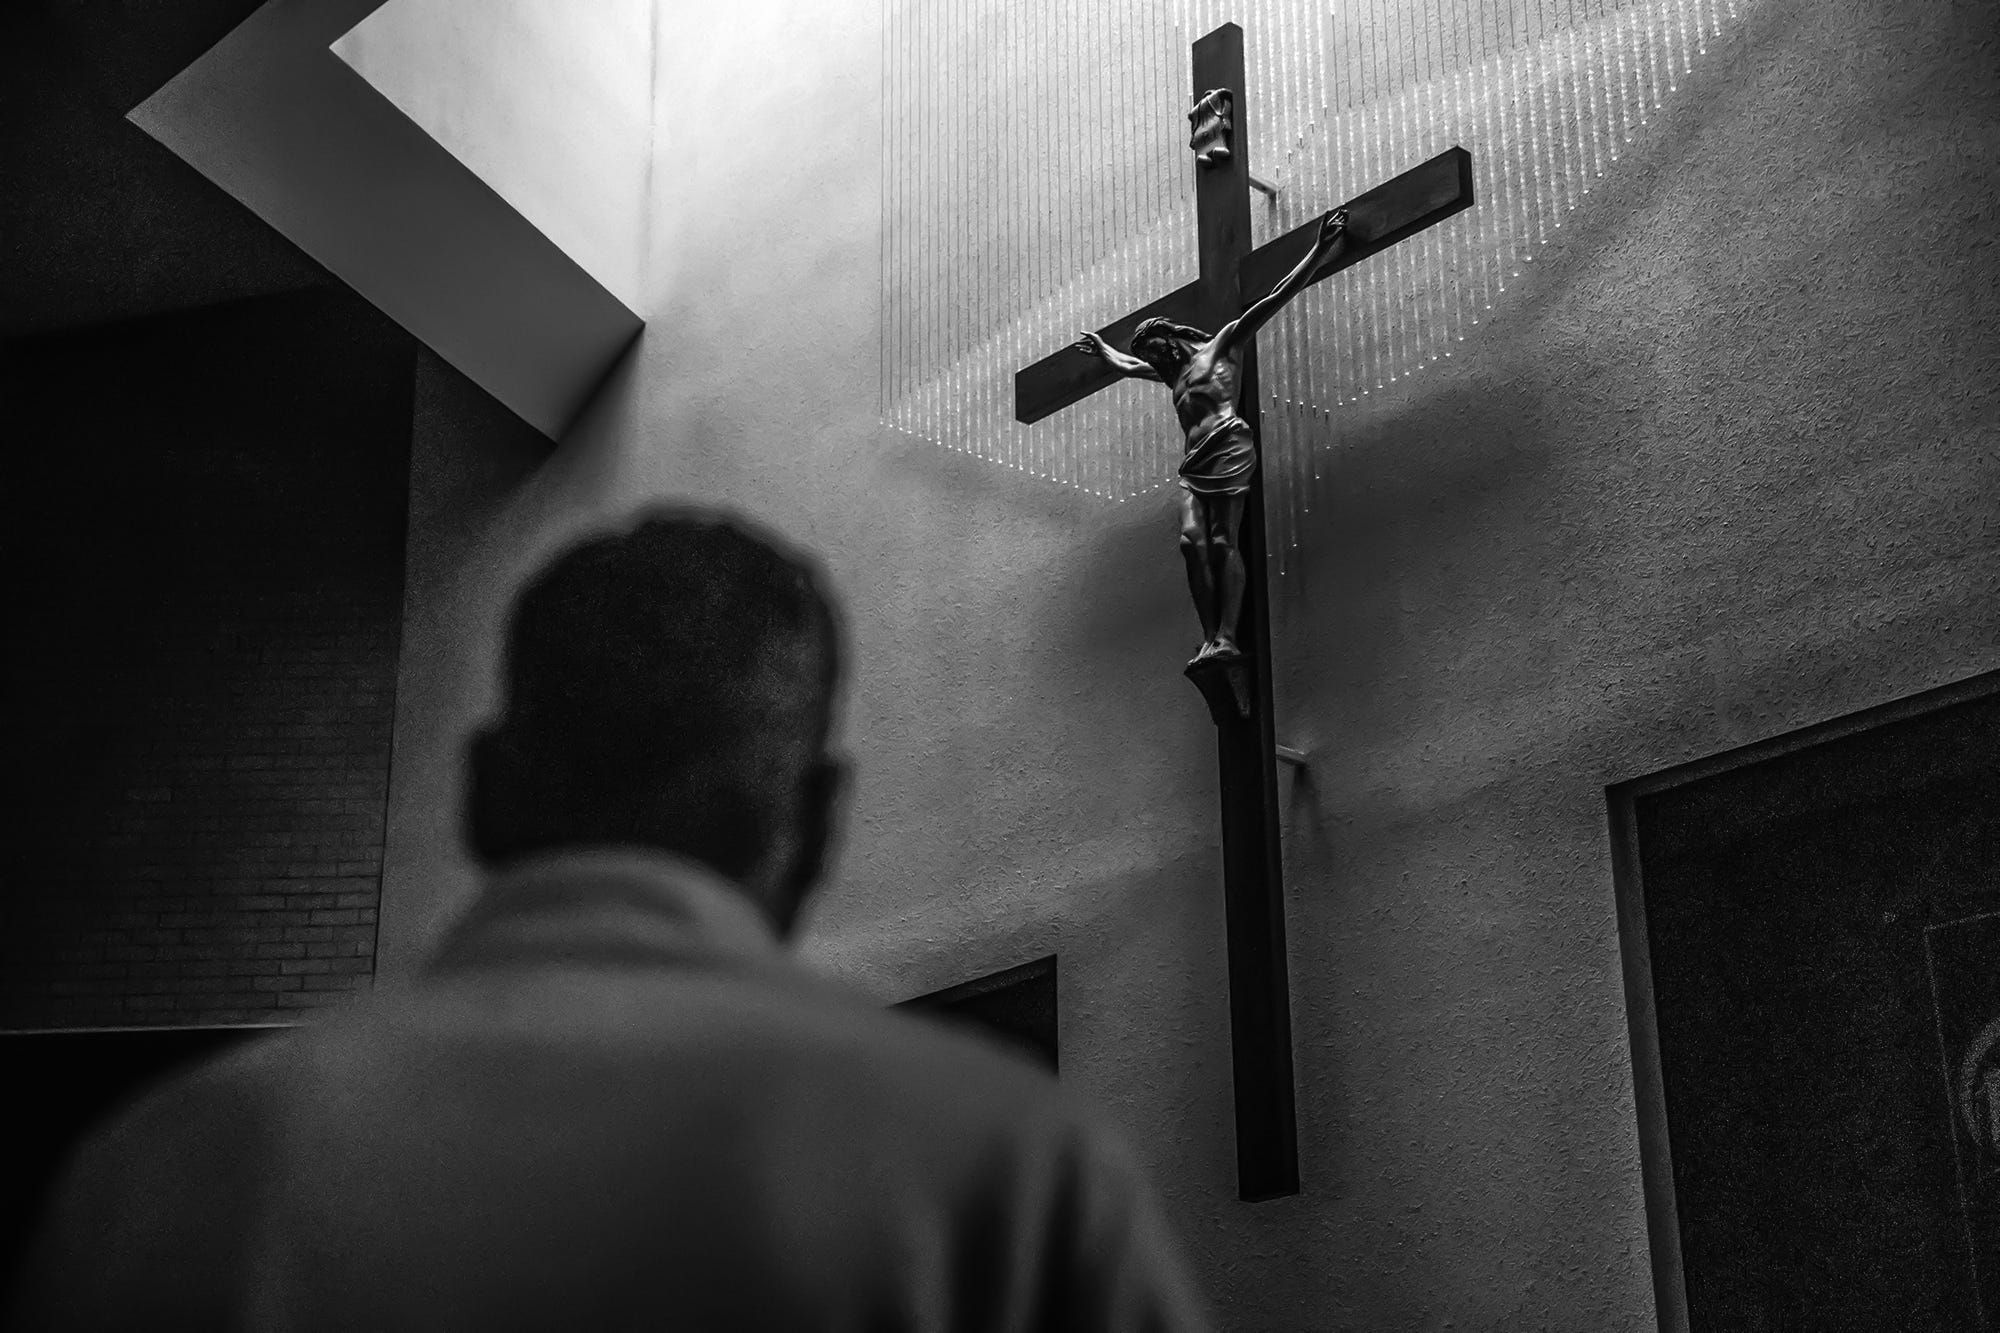 After a quick dinner at Joella's Broad Ripple, Mat Pazzarelli goes through a personal prayer ritual at St. Matthew The Apostle on Wednesday, Feb. 27, 2019. The prayers take Pazzarelli 15 minutes to sing. After, he attends a church service.